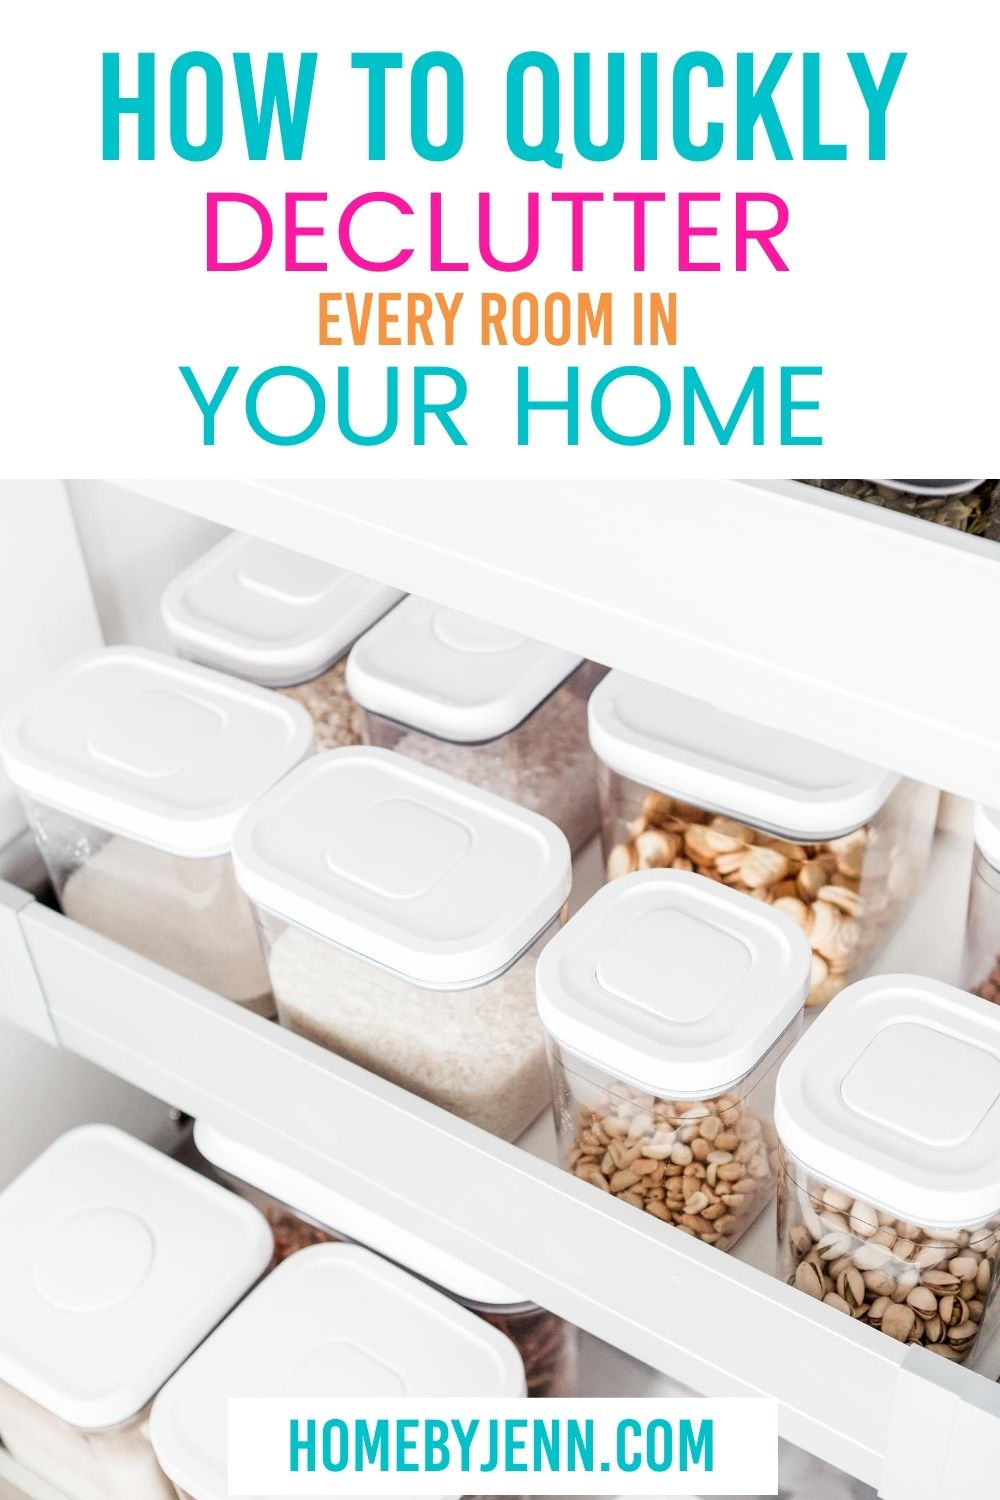 Learn how to quickly declutter your home. Download the free decluttering checklist printable to help you organize your home and remove the clutter. #decluttering #clutter #declutter #cleanhome #organizingtips #organizedhome #orgnaizing via @homebyjenn